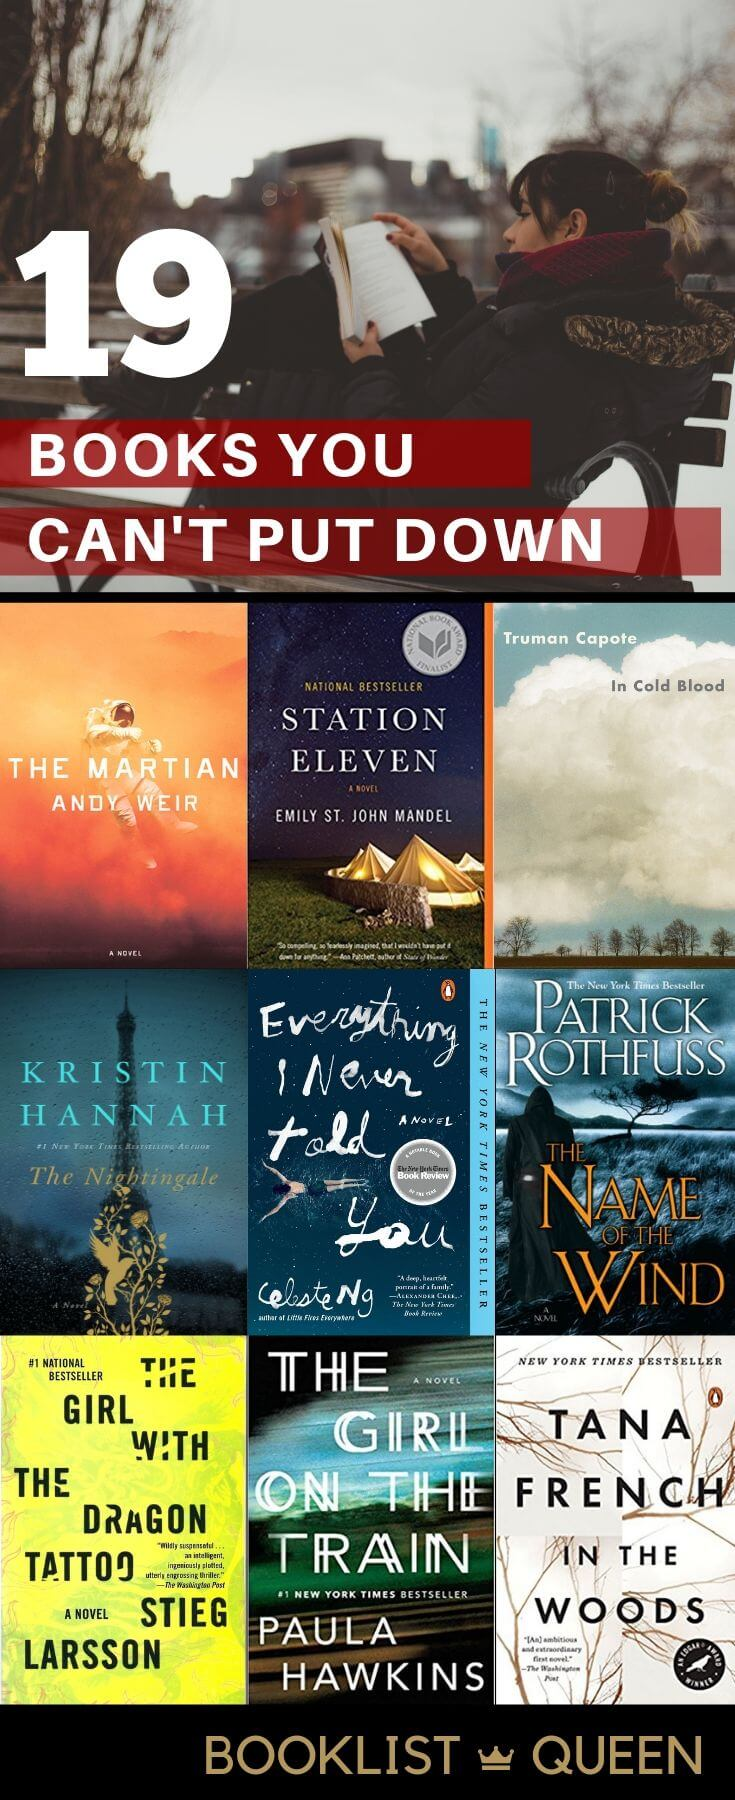 19 Books You Can't Put Down